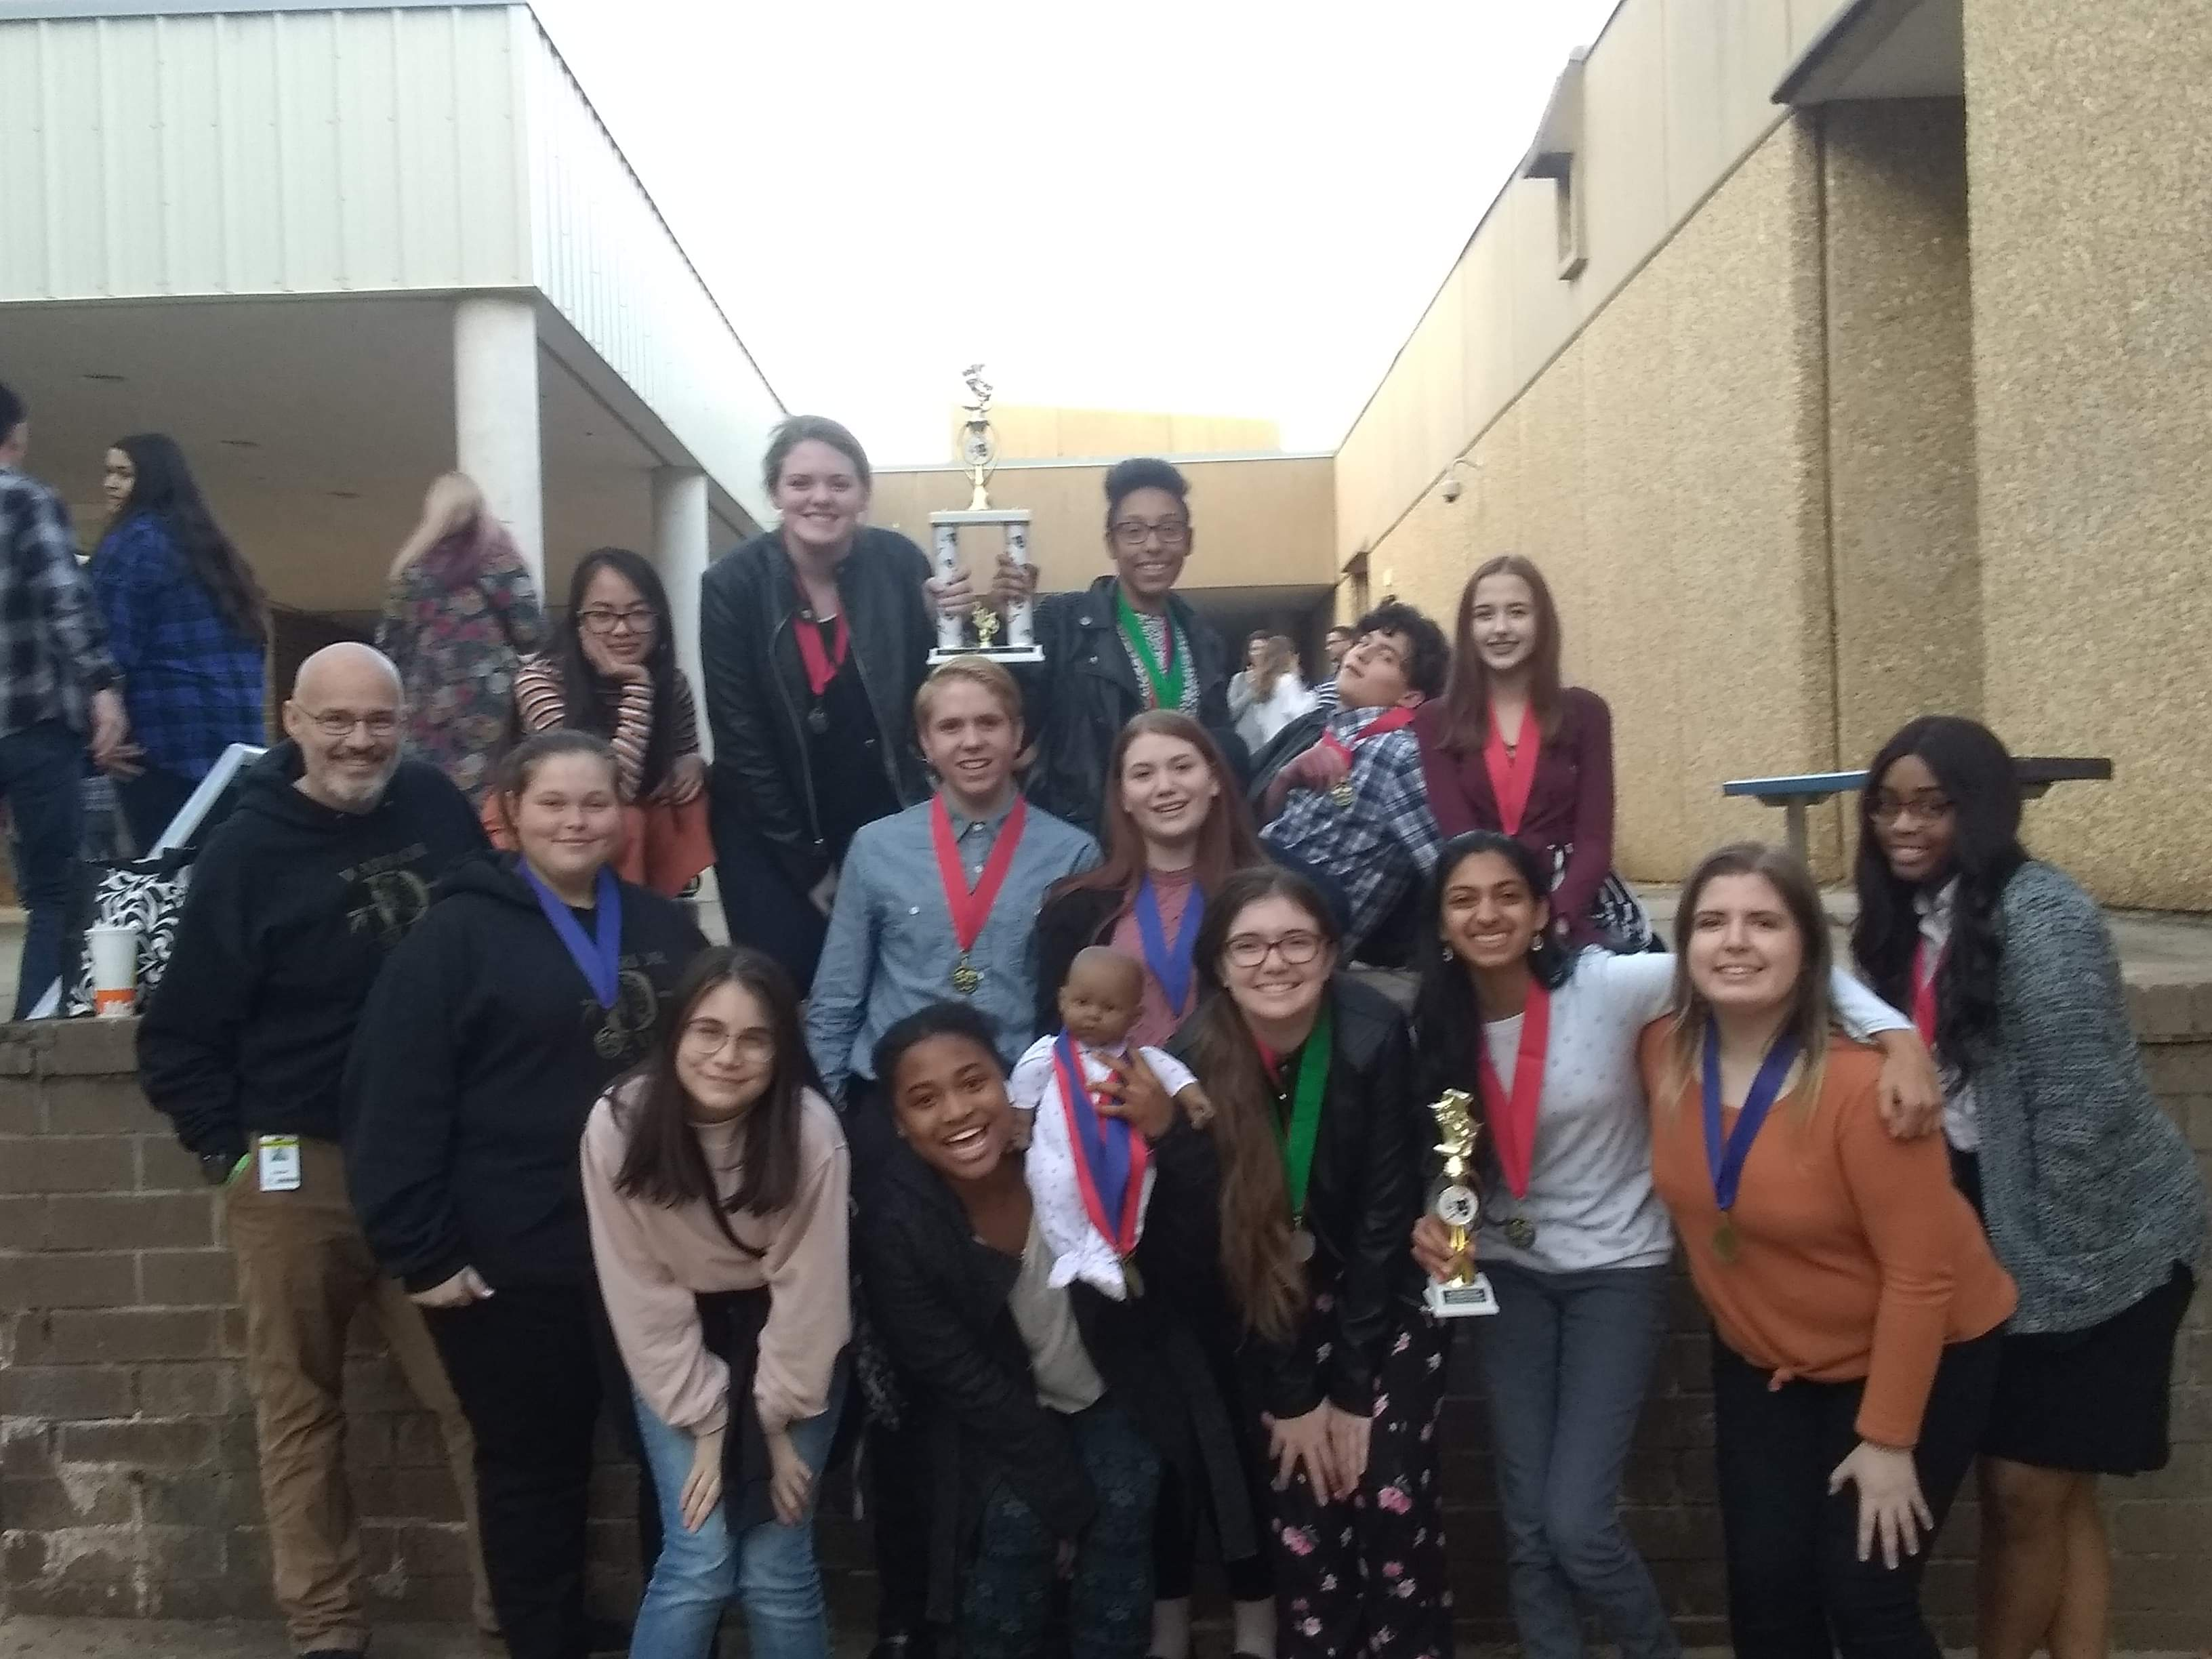 Warrior Theatre students after the awards